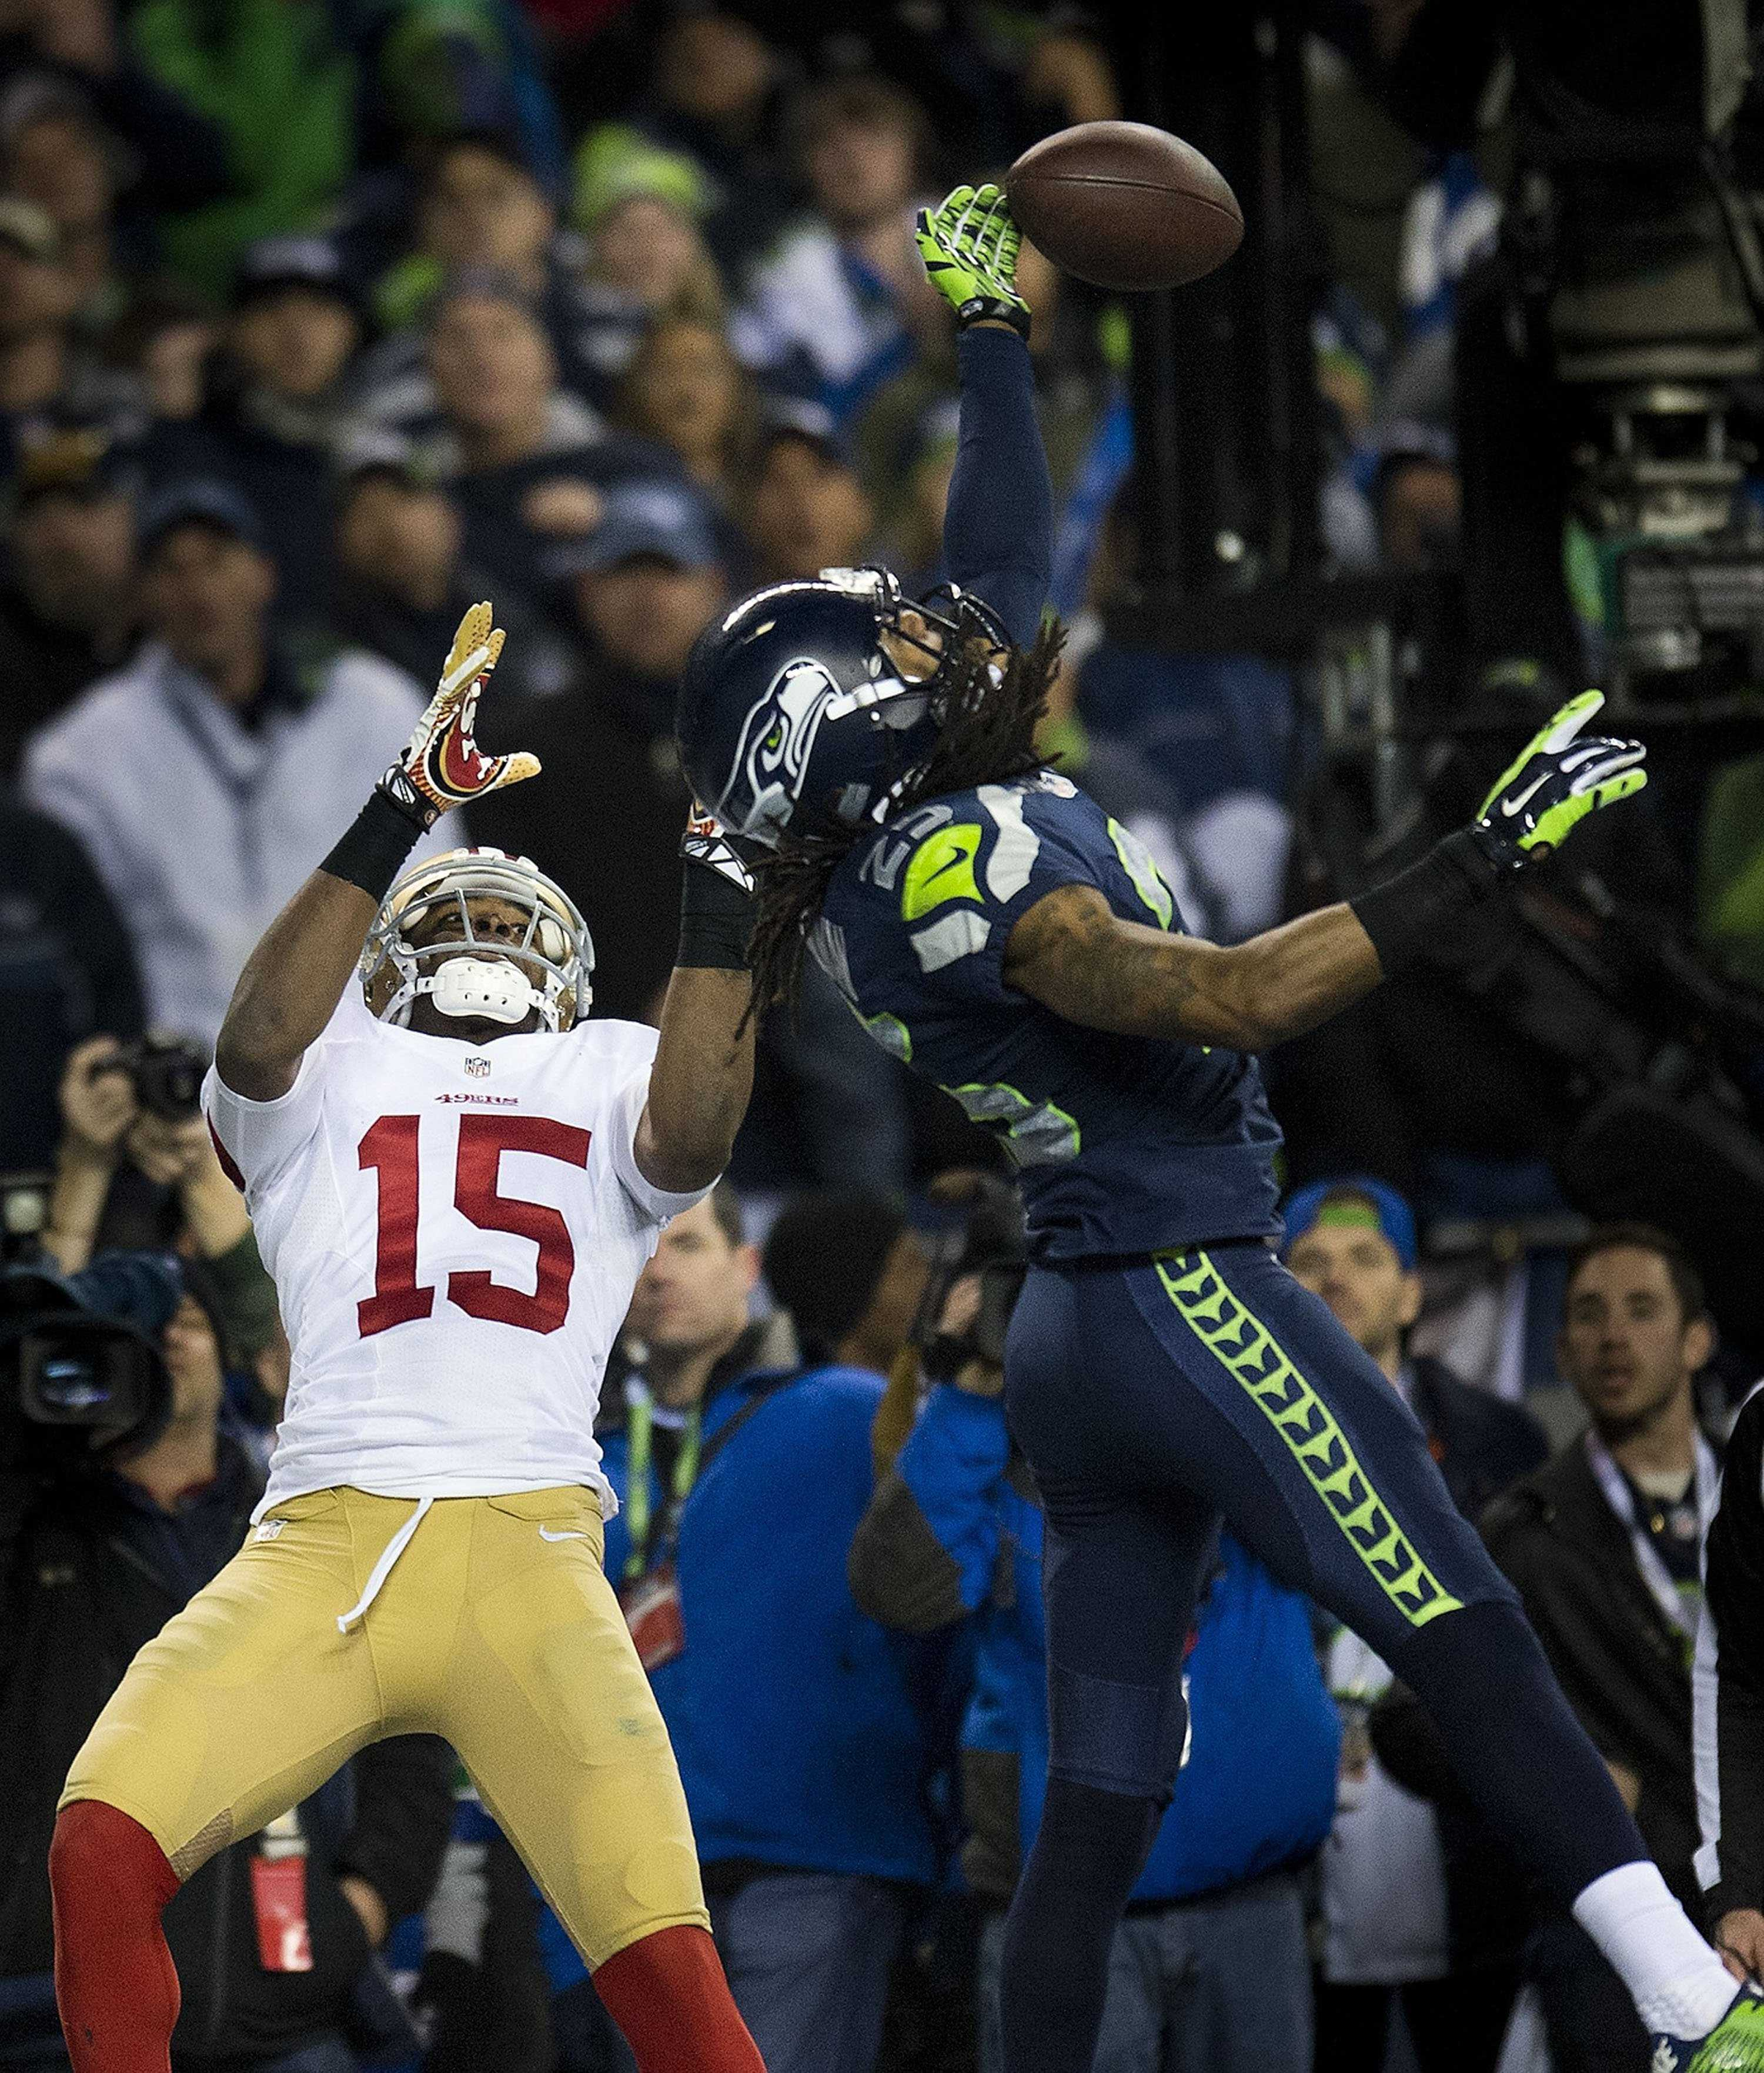 The Seattle Seahawks and San Francisco 49ers are still the class of the NFC, but both have questions to face in 2014.